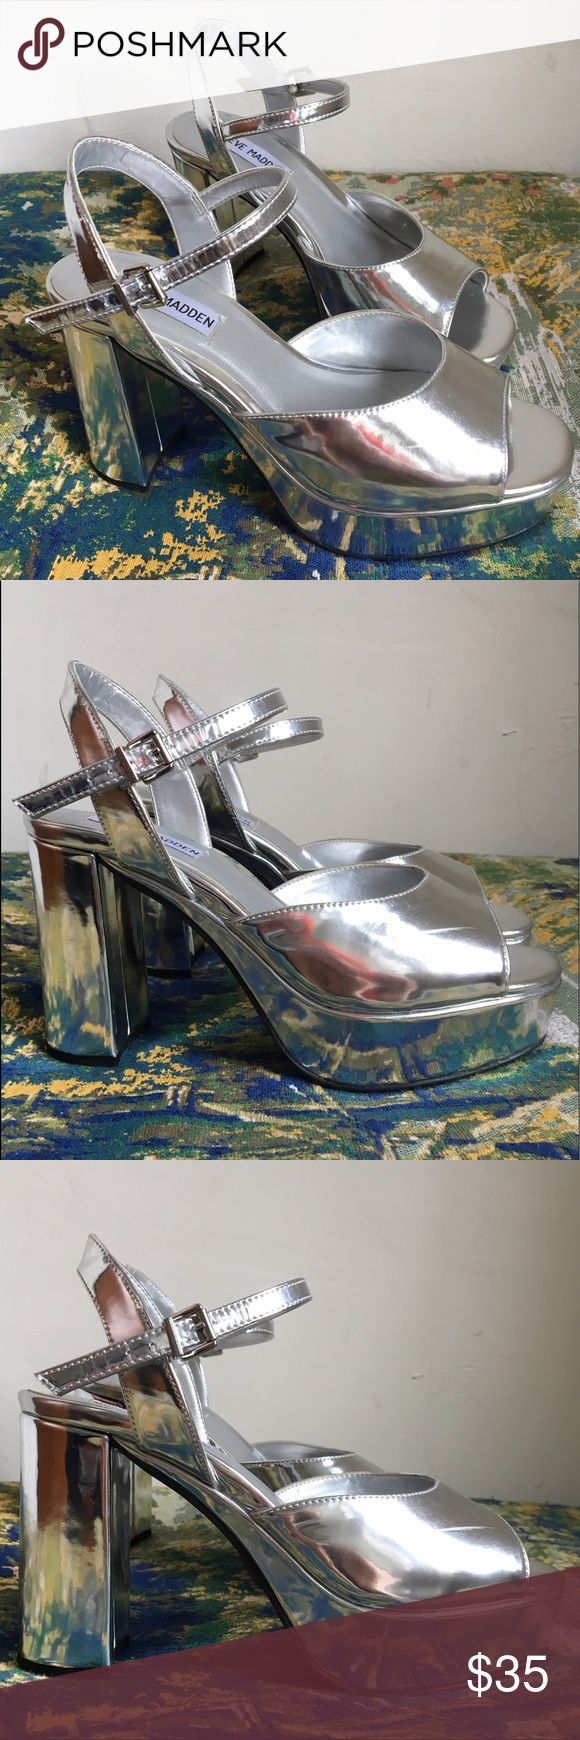 SZ 7 Silver Steve Madden 90s Style Platform Heels totally dope 90s-STYLE (these are not vintage!) platform sandals! these are SO cute and shockingly comfortable (because the actual incline is not that extreme!). i bought these brand new for a romy and michele costume and wore them one additional night before realizing they were definitely not my size. i wear a size 7.5, and while these feel super comfortable, my toes creep out the front. these might even work for a 6.5! Steve Madden Shoes…